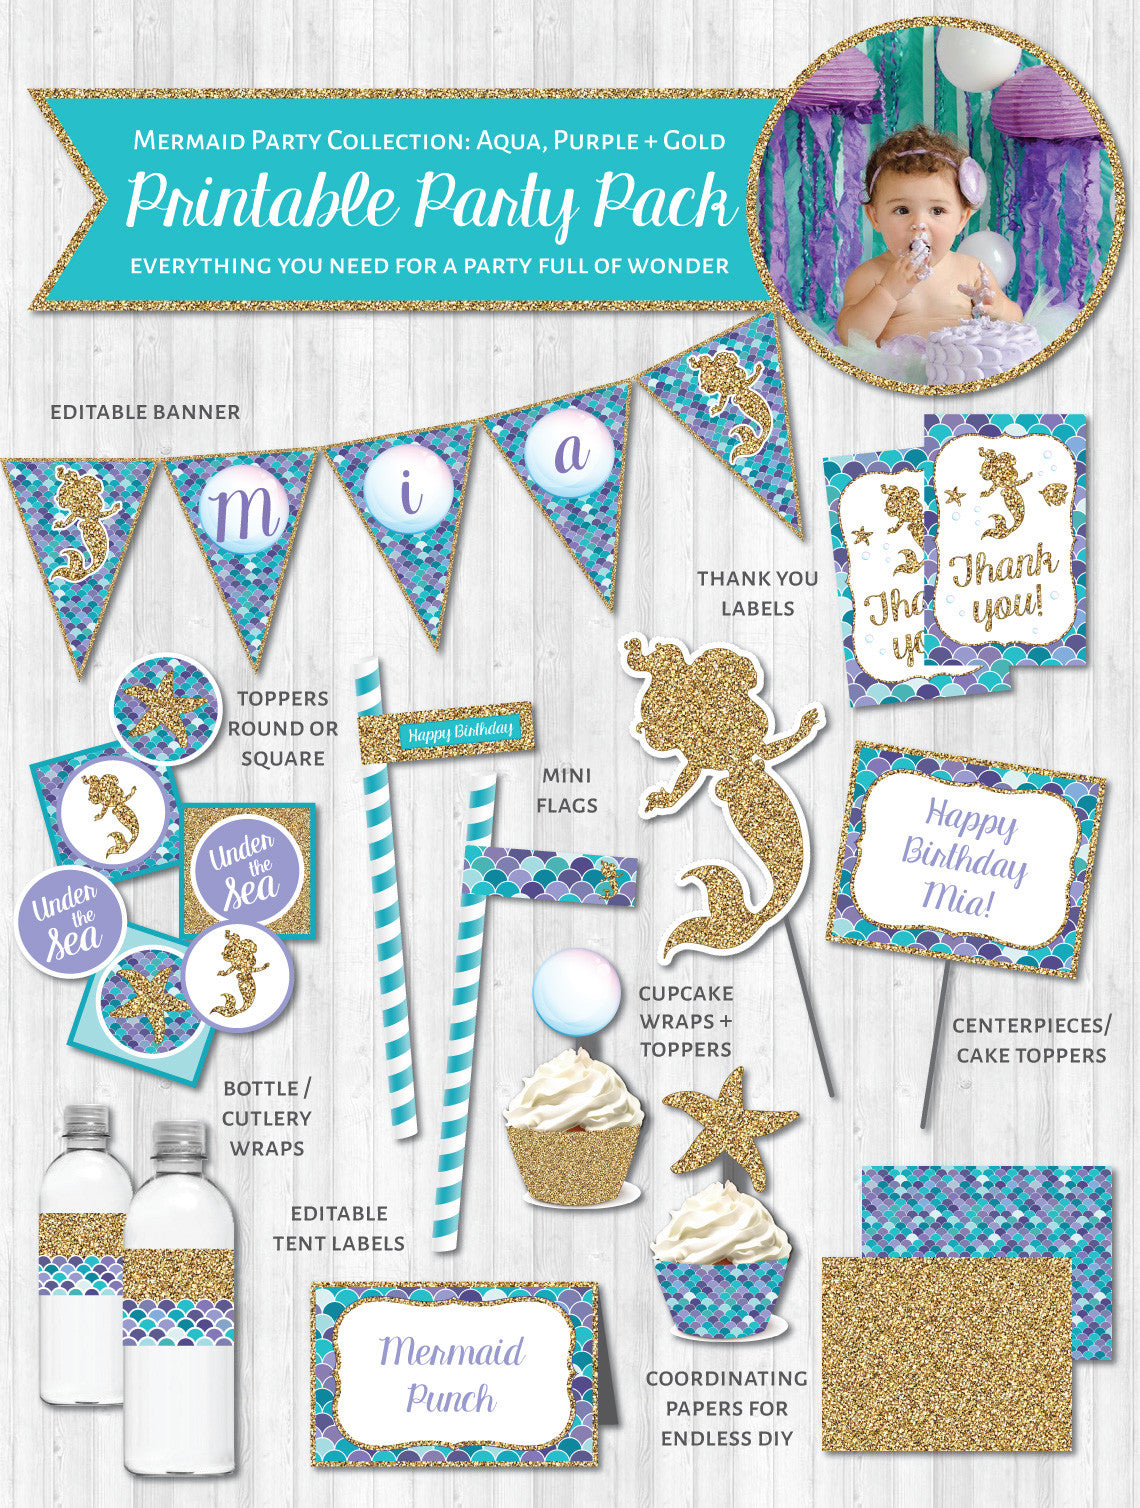 Mermaid Party Printable Decor Pack: Aqua, Purple & Gold Glitter